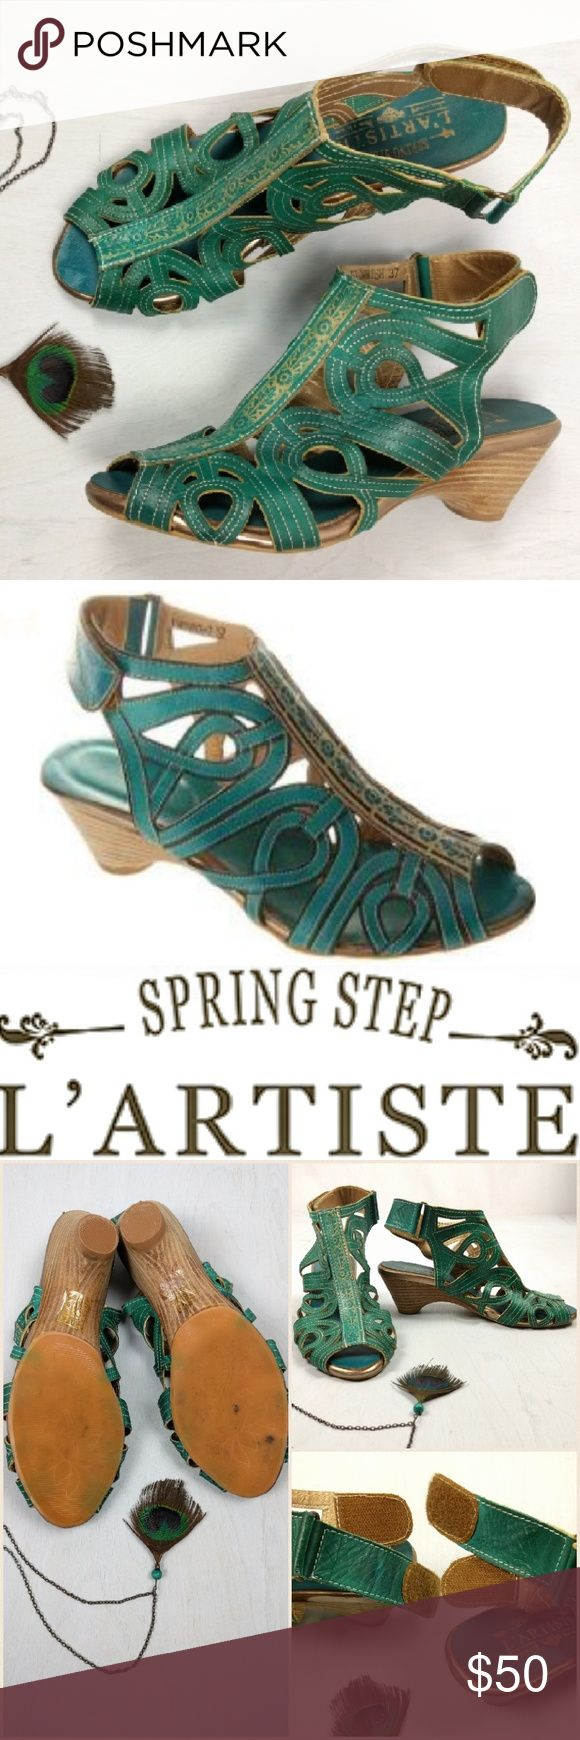 """L'ARTISTE """"Flourish"""" by Spring Step Artisan Bootie Beautiful hand stamped and cut leather forms a unique ankle boot sandal combo. Great blue green teal color. Antique gold or bronze edge. Wooden stacked and rounded heel. Flexible foot bed. Adjustable Velcro closure. On sale online now for $99 + shipping! Soft and comfortable. Perfect for Spring. Amazing condition!! A few dark spots on soles are the only signs of wear! Spring Step Shoes"""